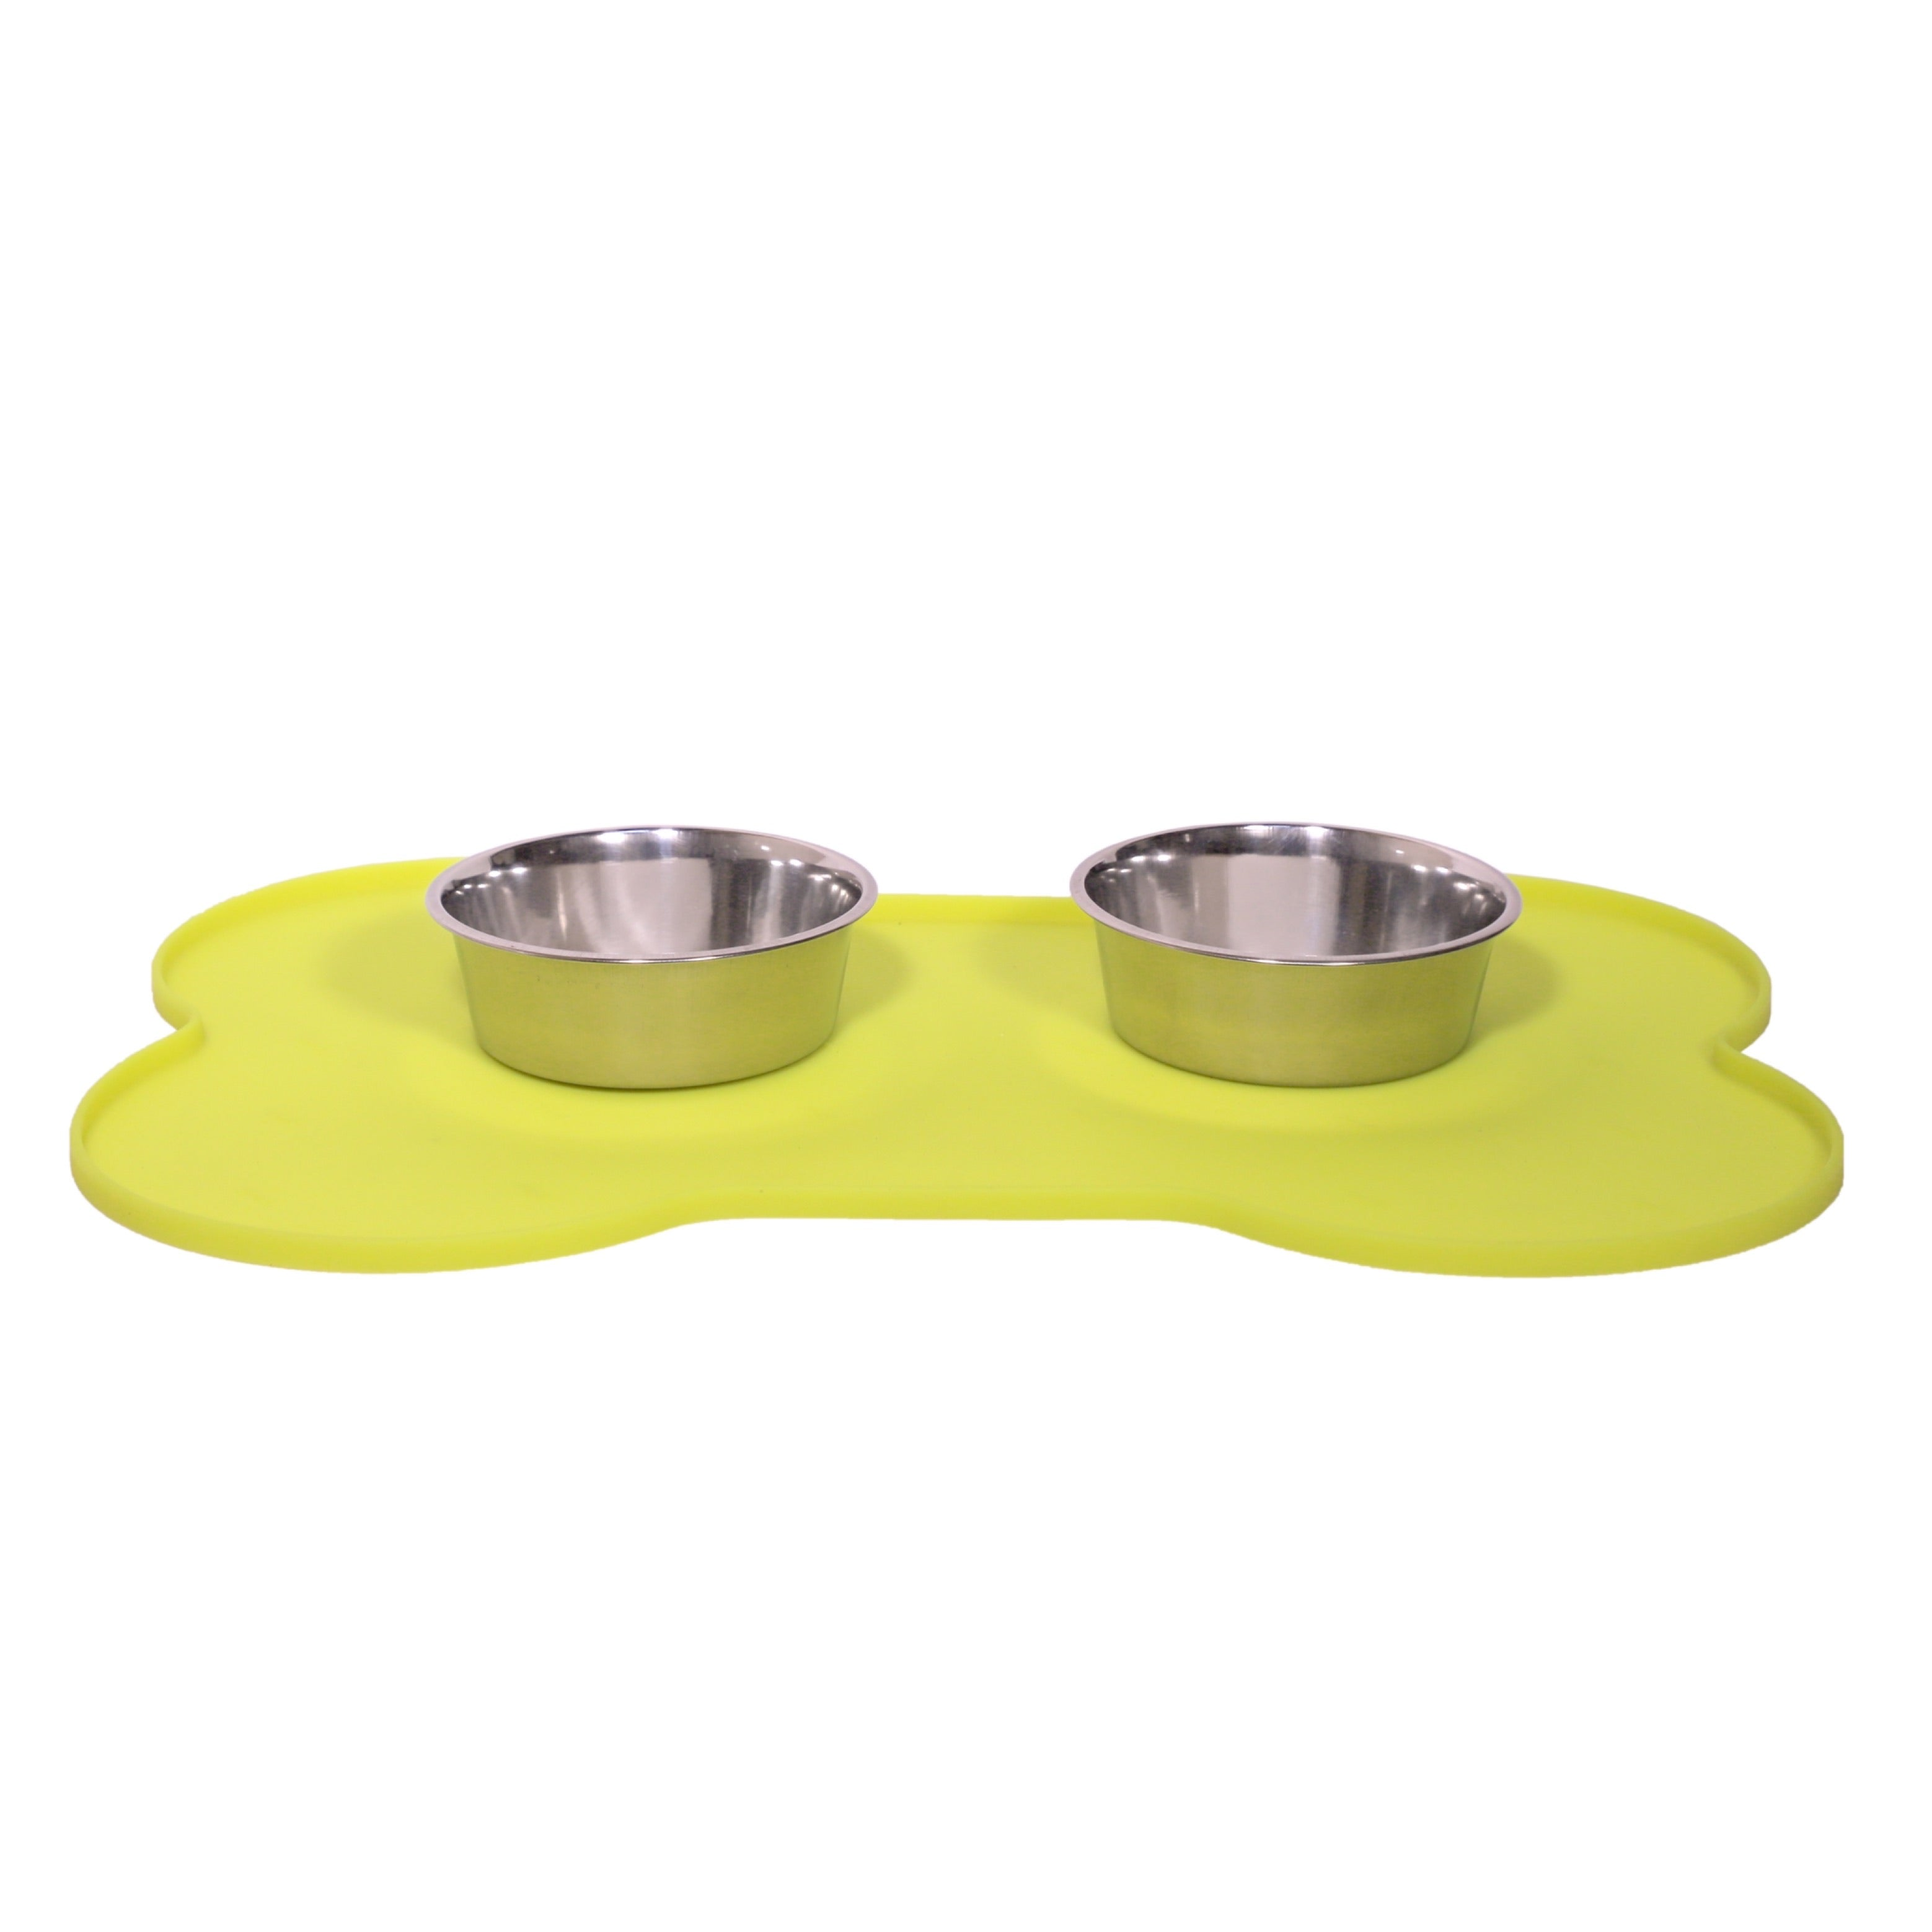 Bone Shape Silicon Rubber Mat- Lime Green